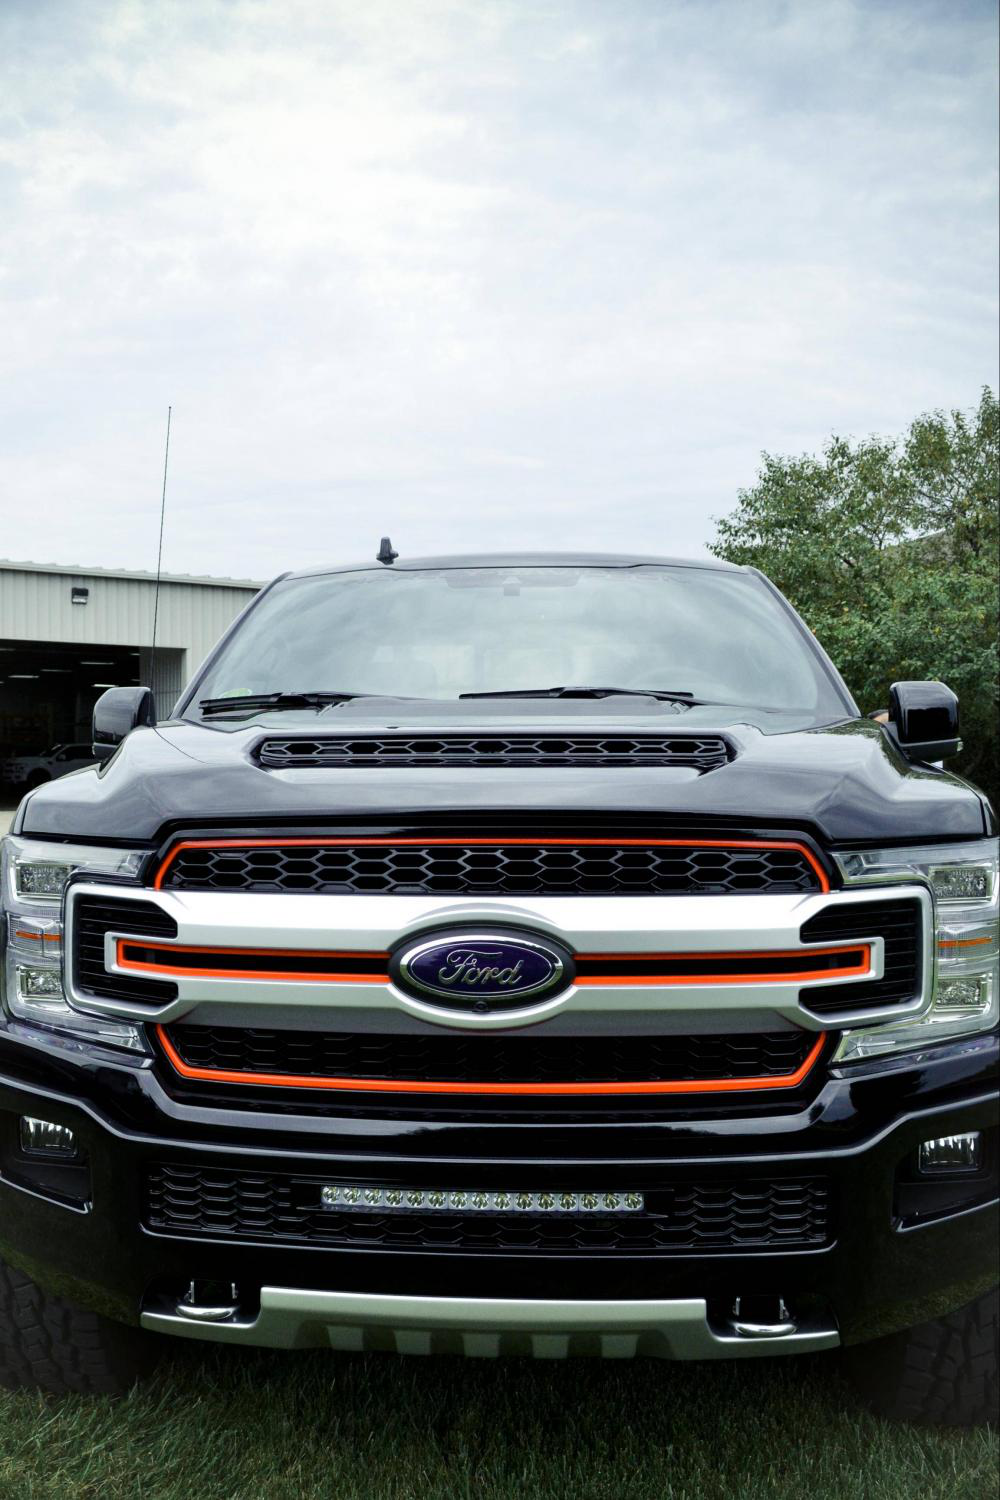 Custom Harley-Davidson Ford F-150 is back for 2019